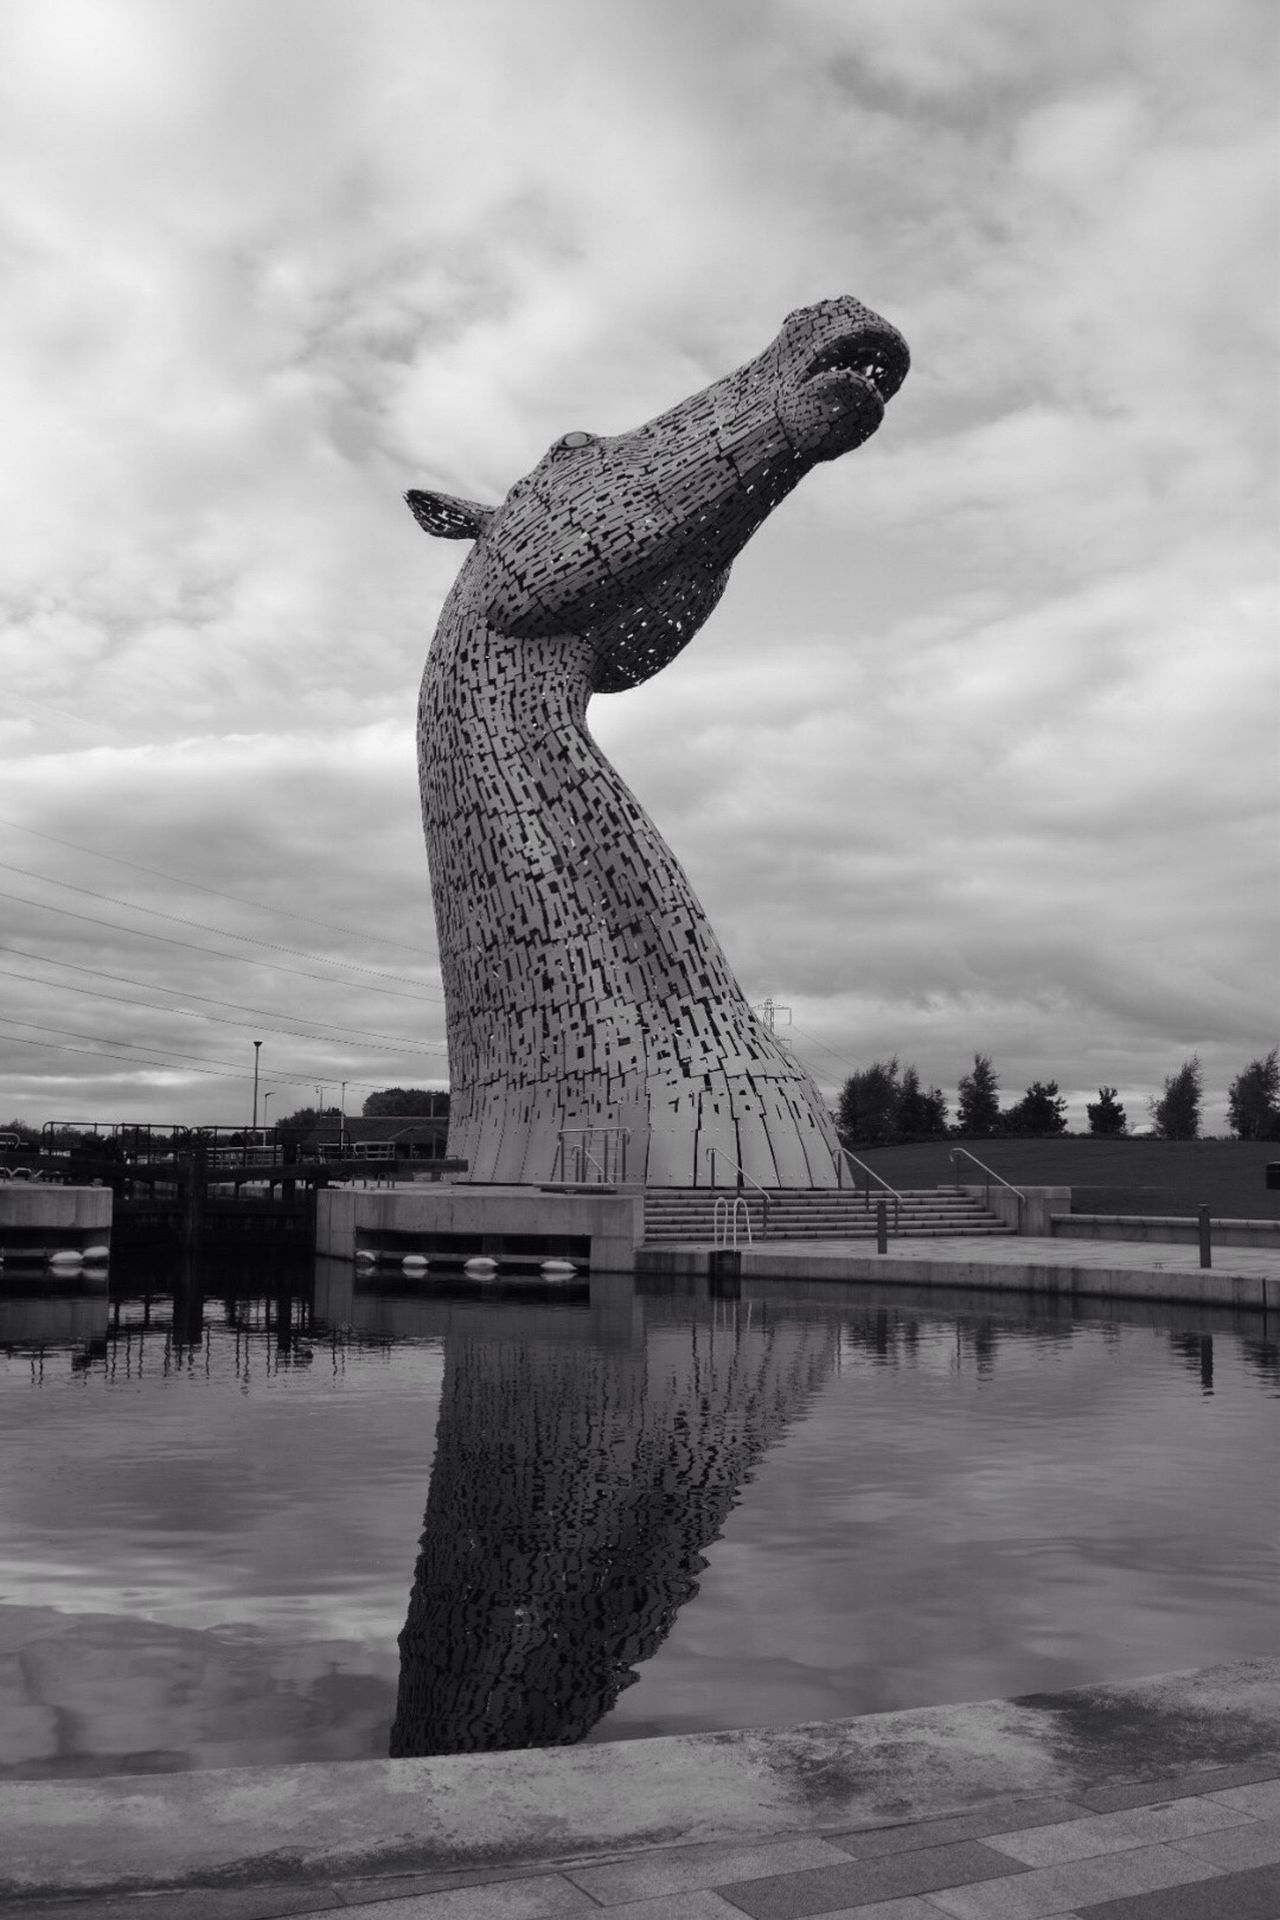 Sky Reflection Cloud - Sky Water Outdoors Sculpture Statue Nature Day Architecture Kelpie Kelpies Of Falkirk Blackandwhite Photography